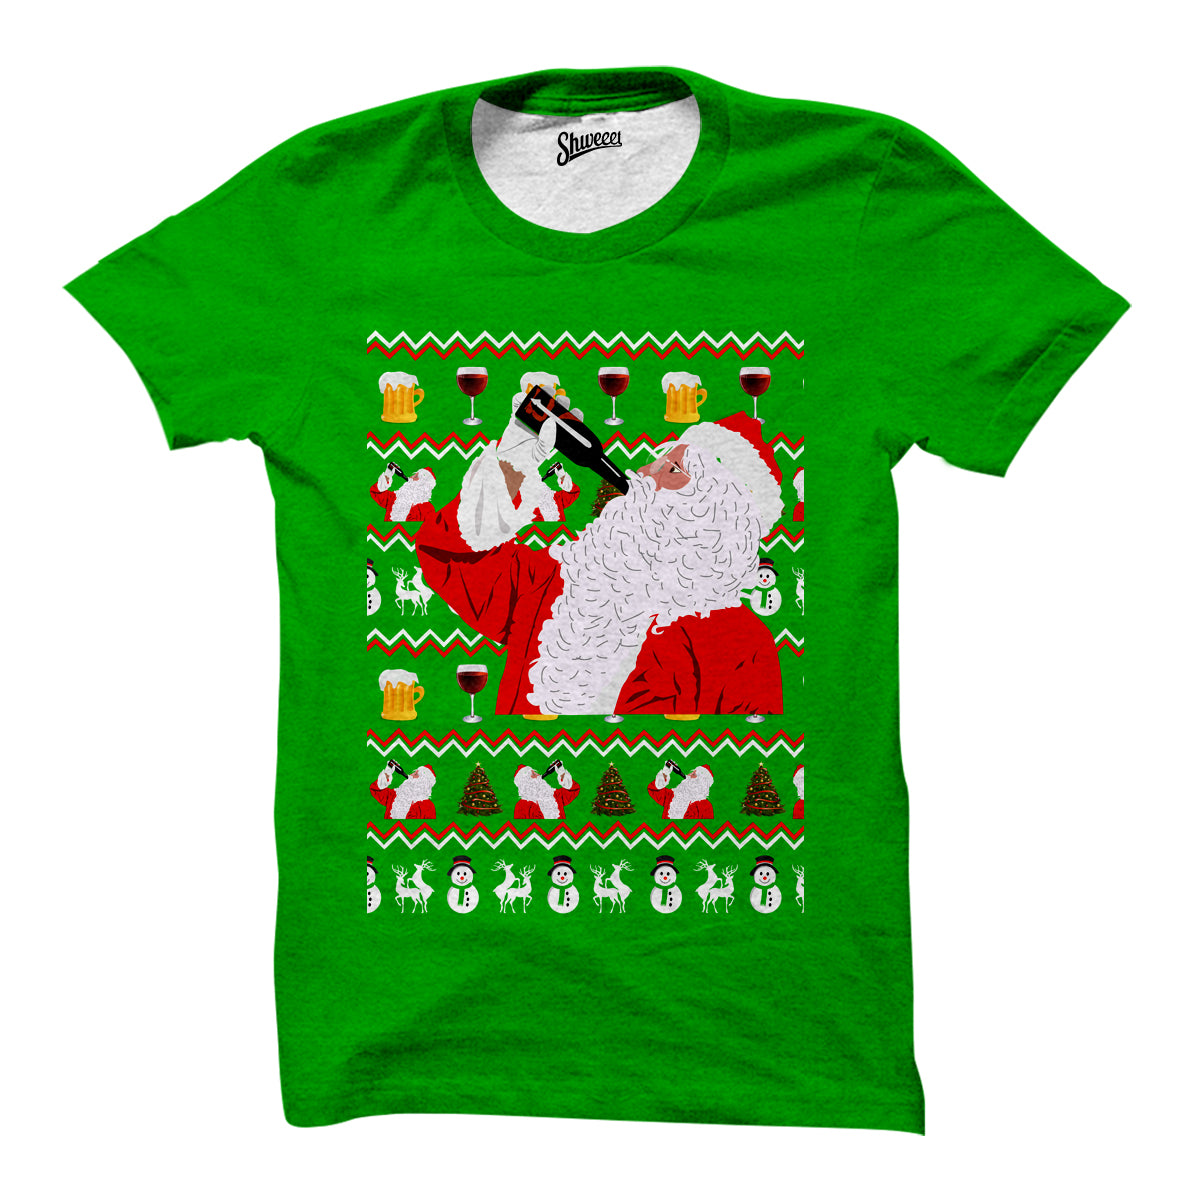 0d7b2c710 Drunk Santa Christmas T-shirt | Awesome and Funny Christmas Shirt - Shweeet